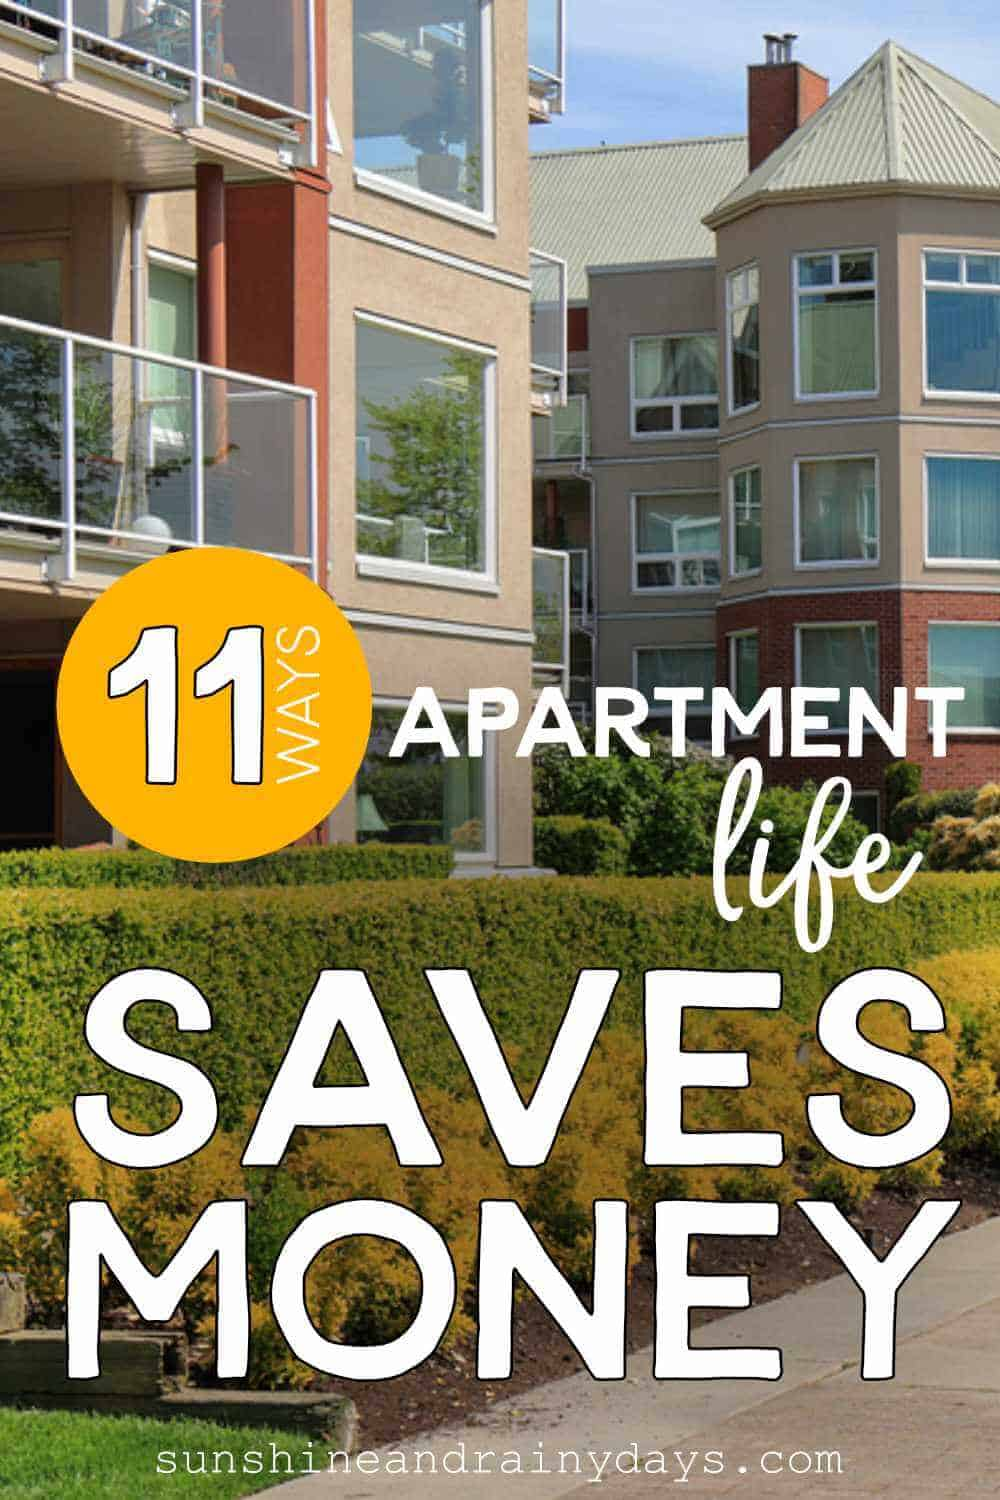 Apartment Buildings with the words: 11 Ways Apartment Life Saves Money